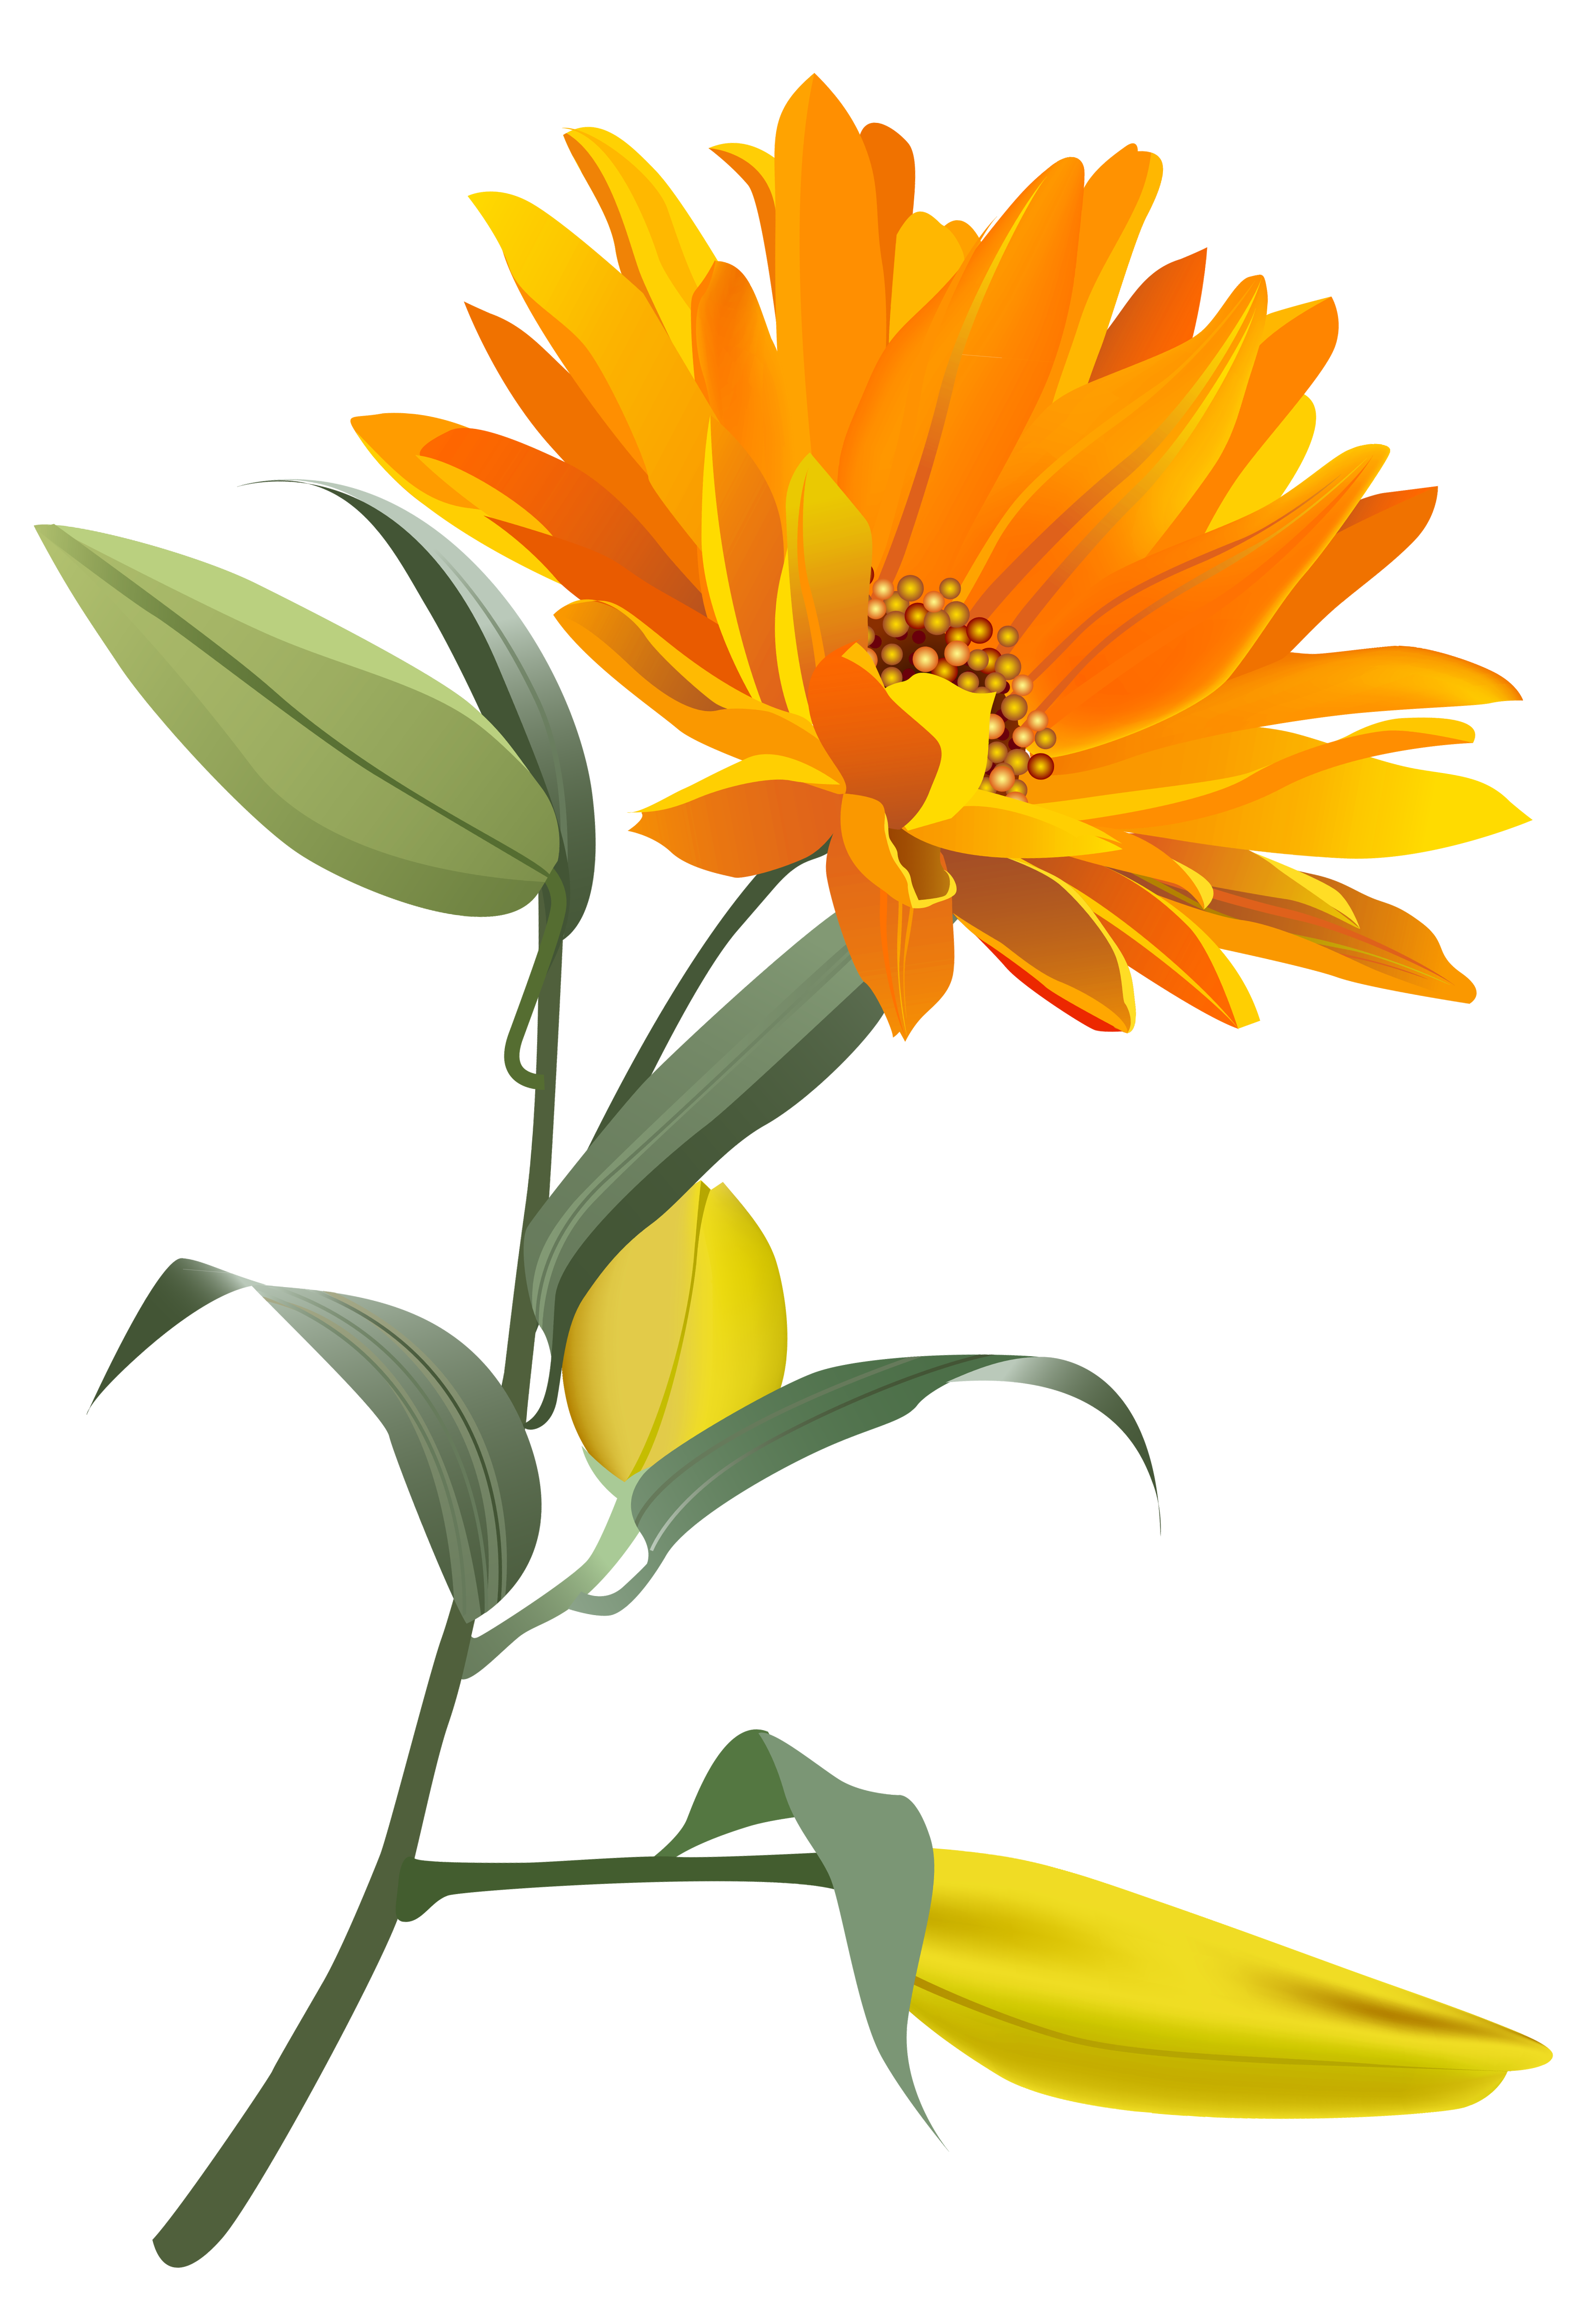 Flower clipart orange clipart royalty free library Orange Flower PNG Clip Art Image | Gallery Yopriceville - High ... clipart royalty free library